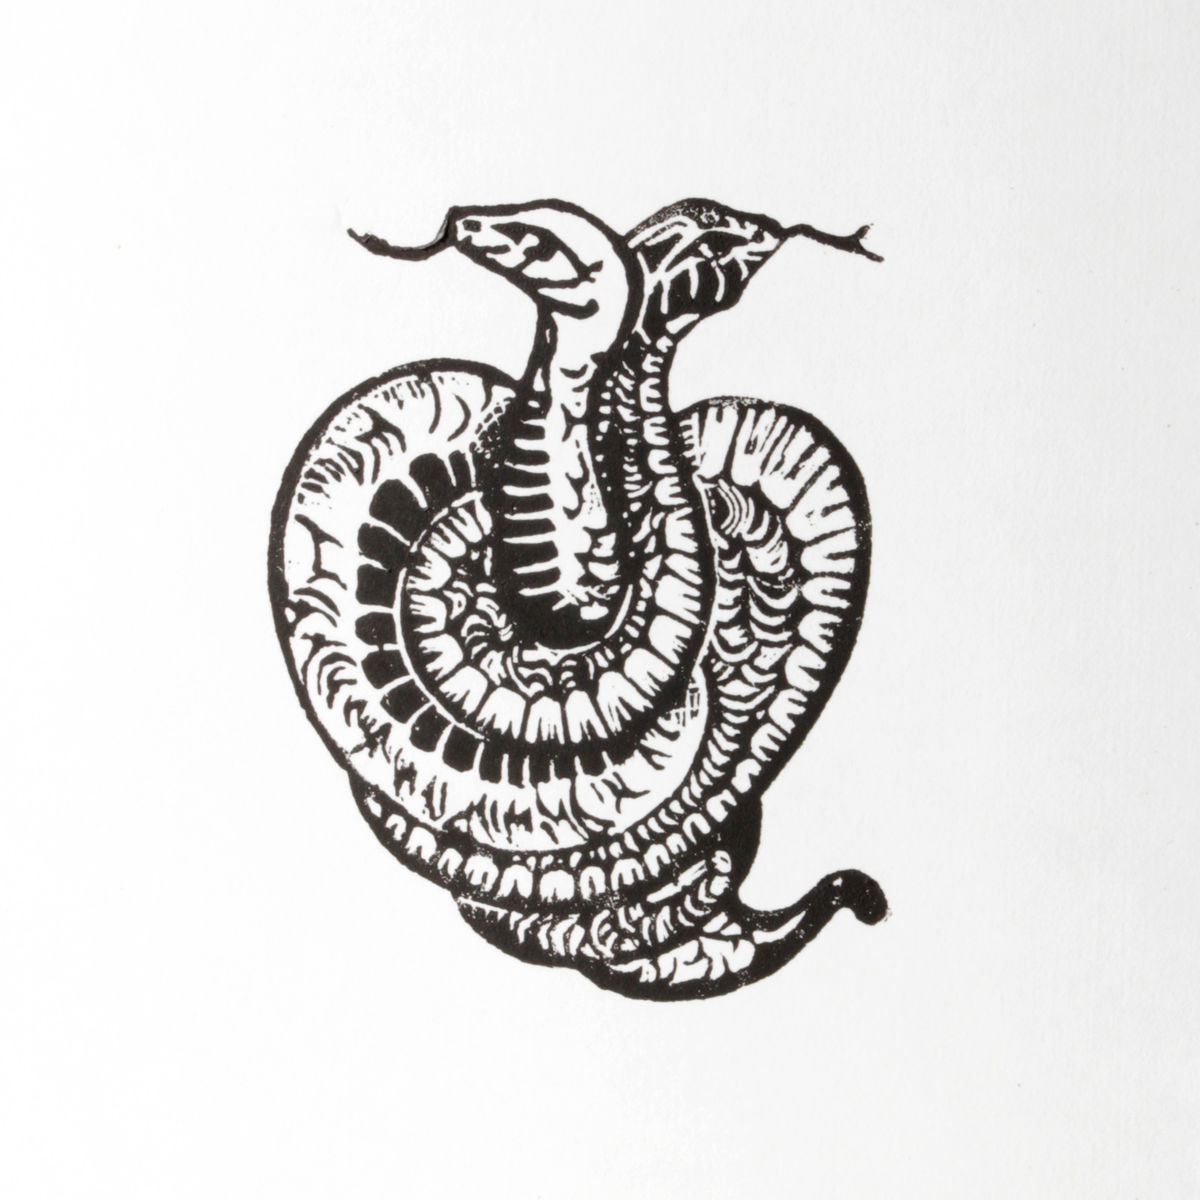 SnakeHeart Black Original Print Linocut - product images  of